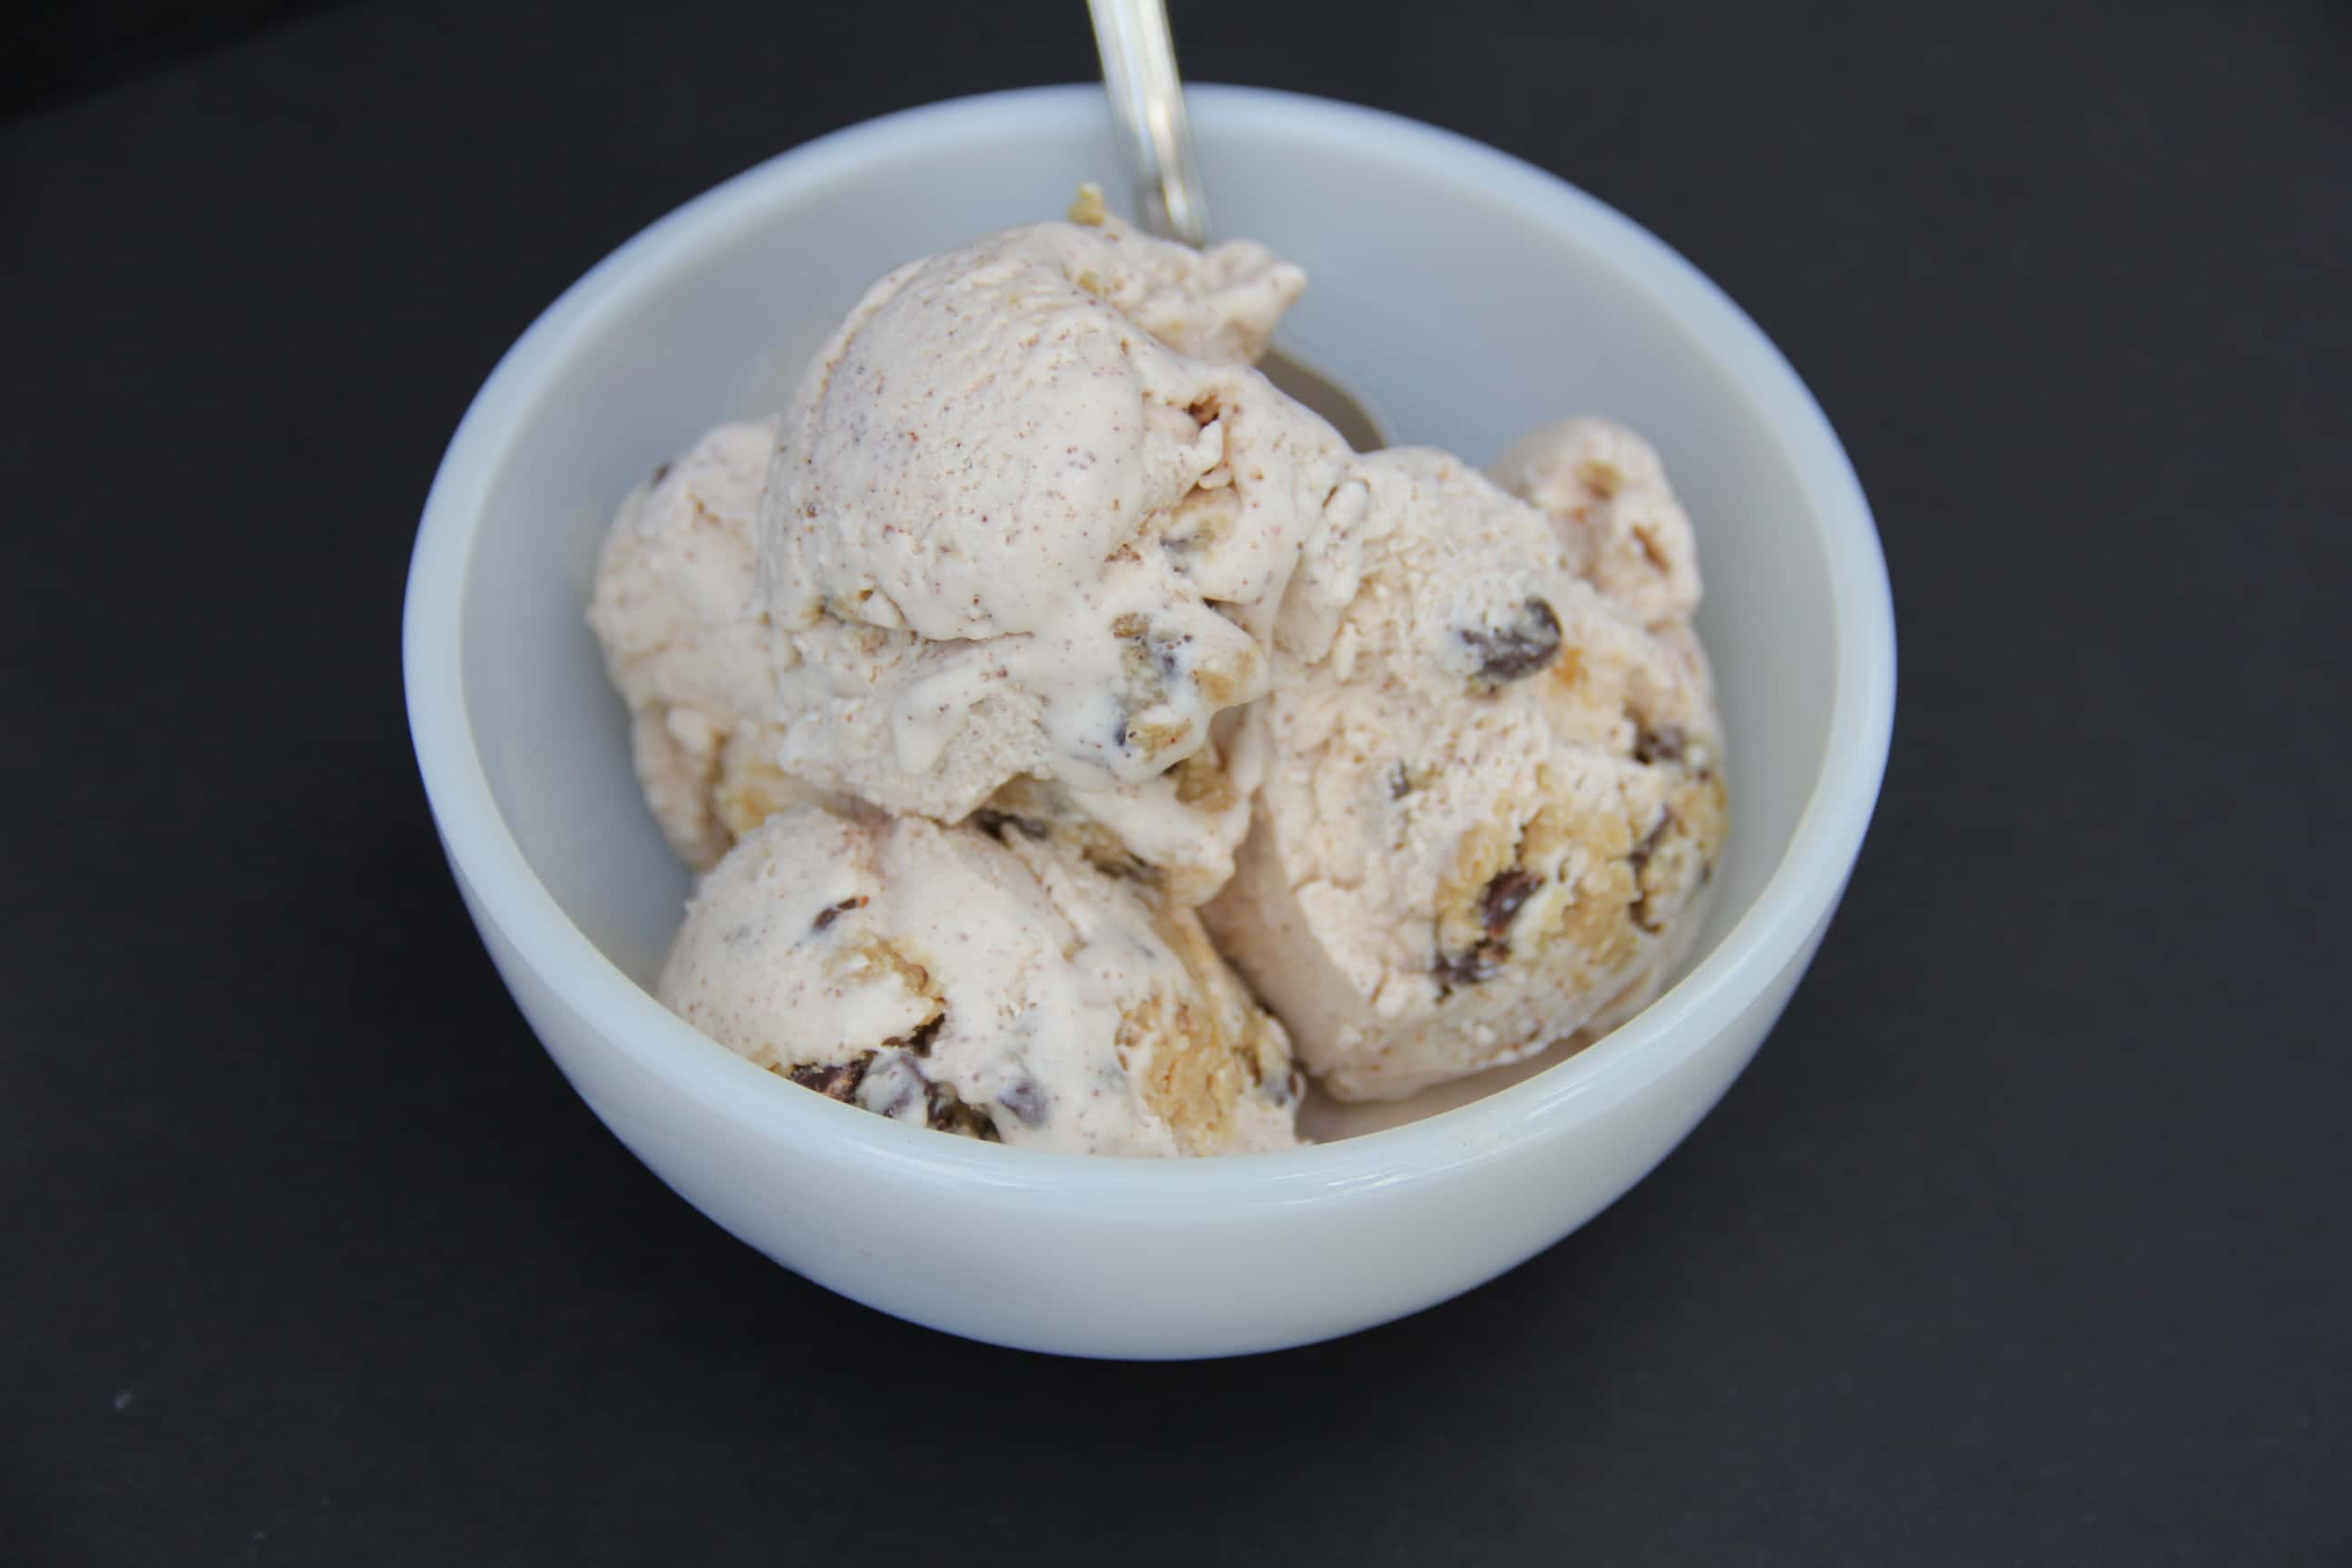 Cinnamon Cookie Chunk Homemade Ice Cream Recipe